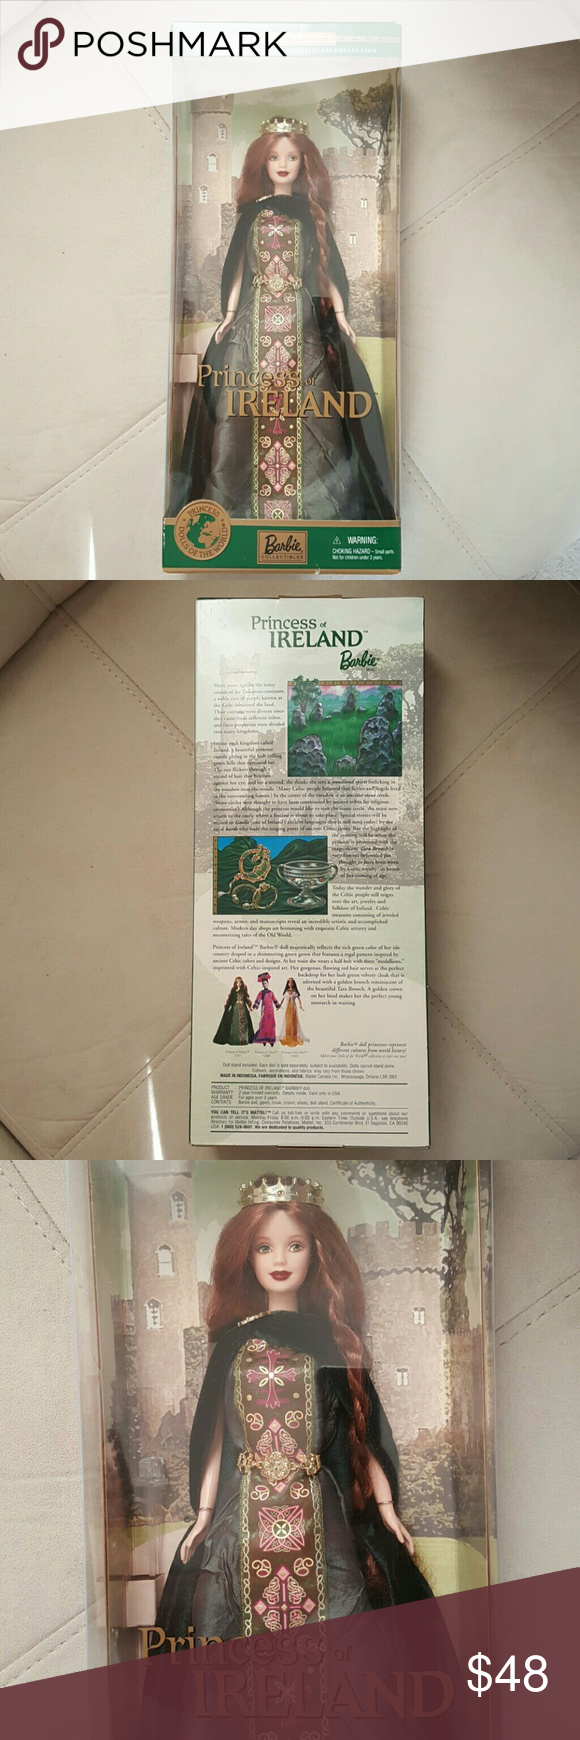 NIB Dolls of the World Princess of Ireland New in box. Never open. Factory sealed.  Collectors edition. 2001.   Dolls of the World. Princess of Ireland. Content includes doll, gown, cloak, crown, shoes, doll stand and certificate of authenticity. Mattel  Other